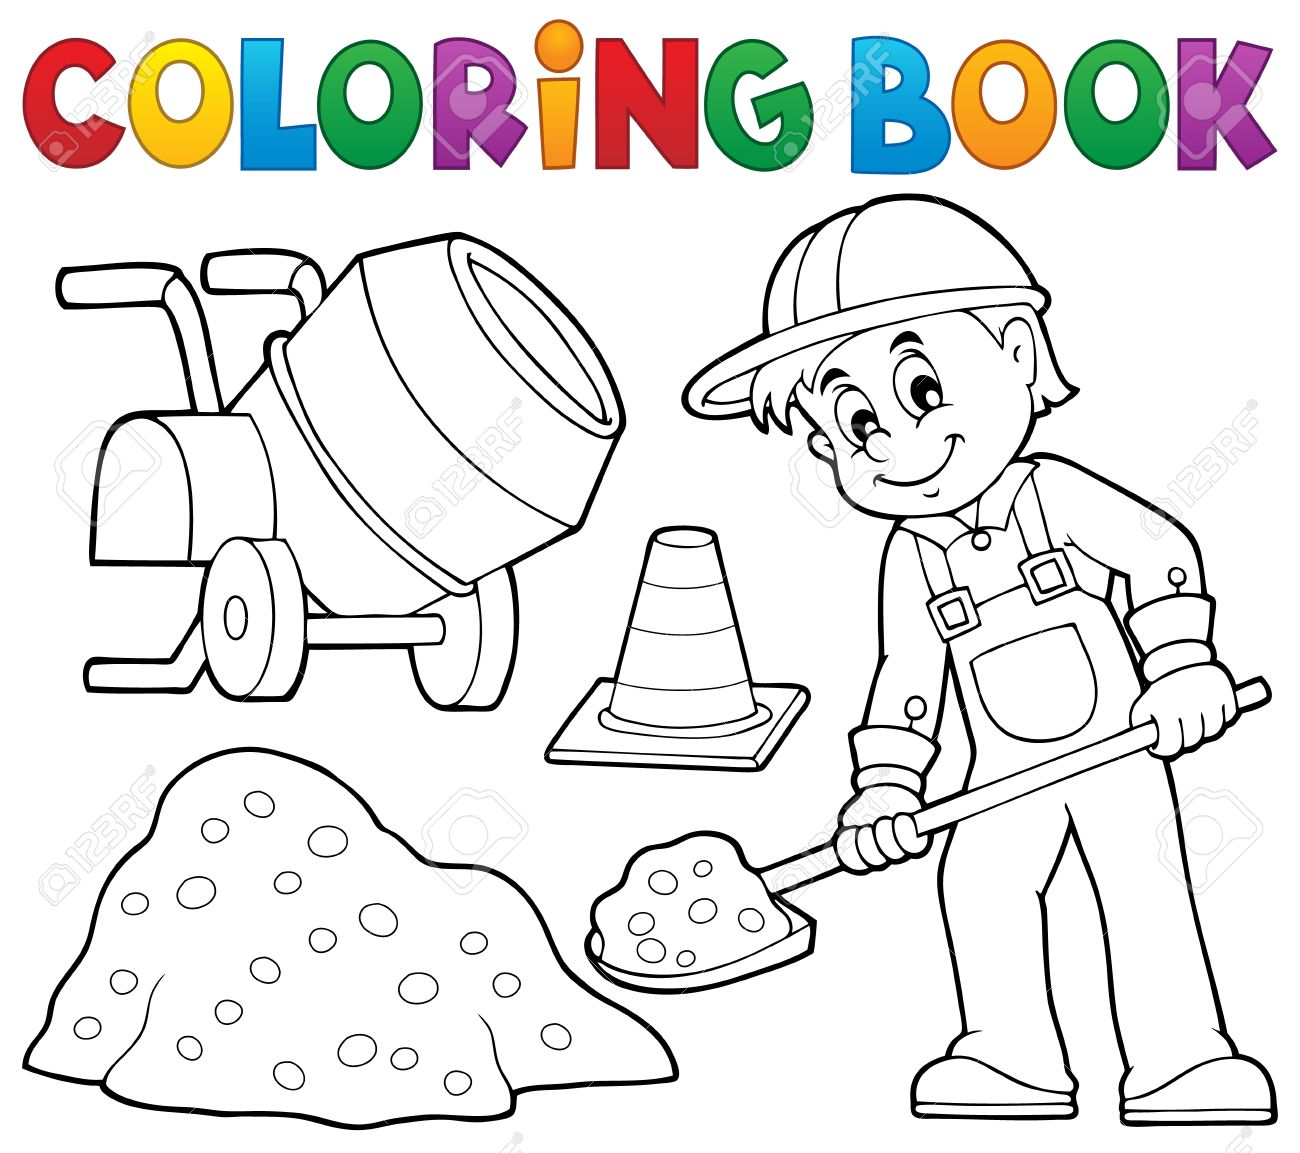 coloring book construction worker 2 vector illustration royalty